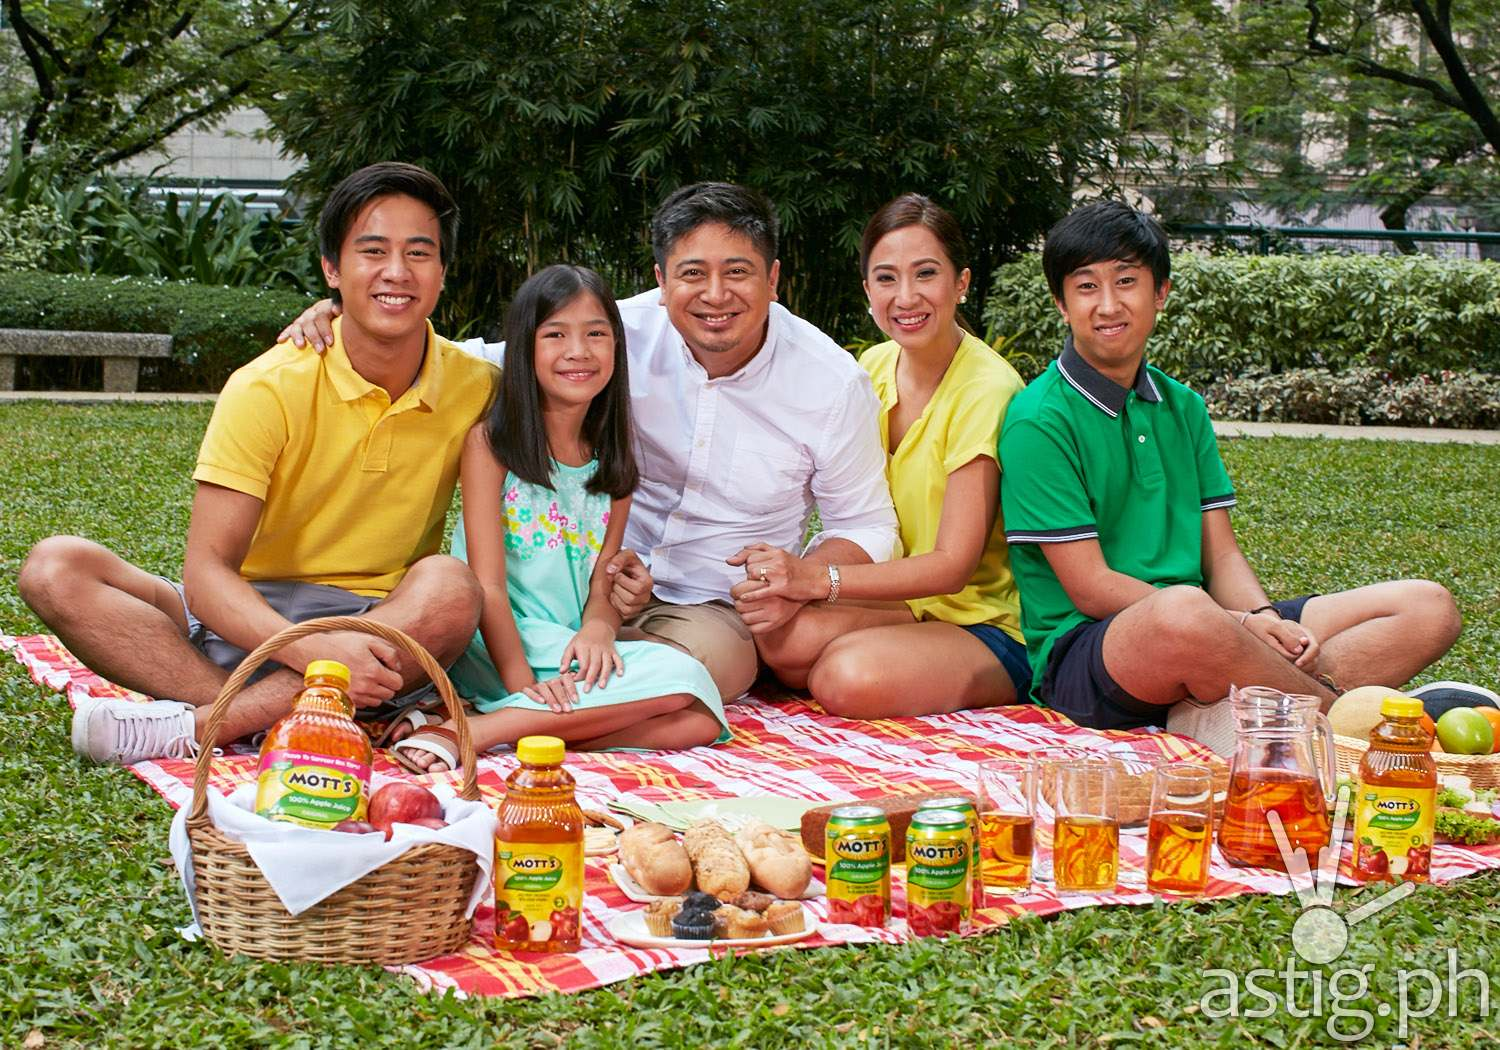 mommymundo.com's Janice Villanueva and family for Mott's Apple Juice